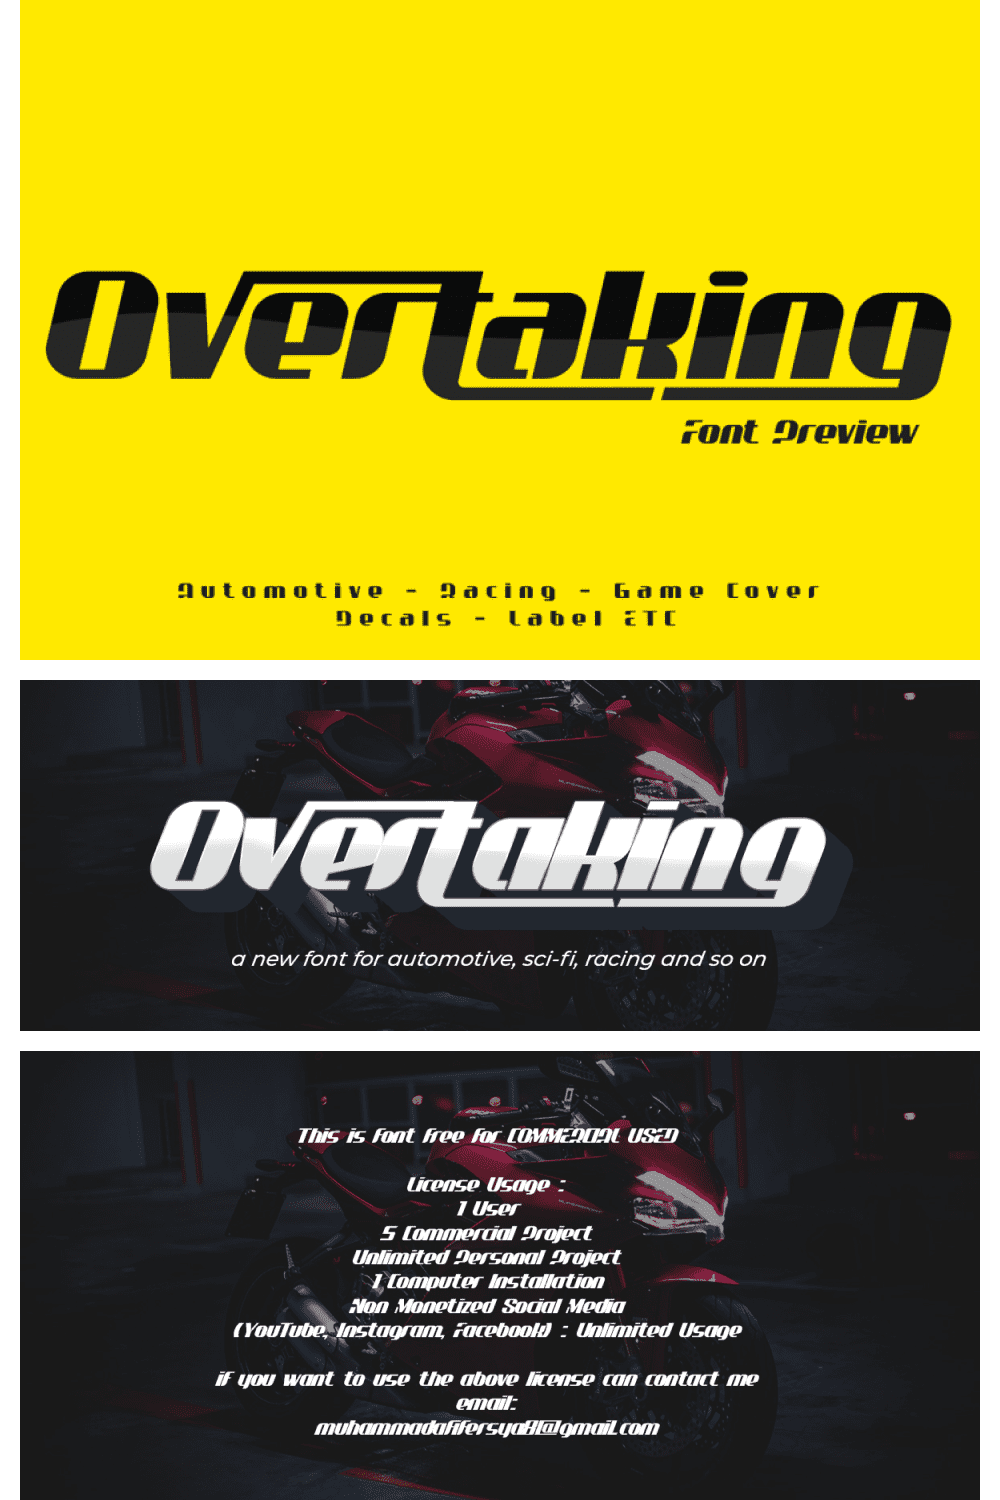 The font is somewhat similar to the Fast and the Furious style.